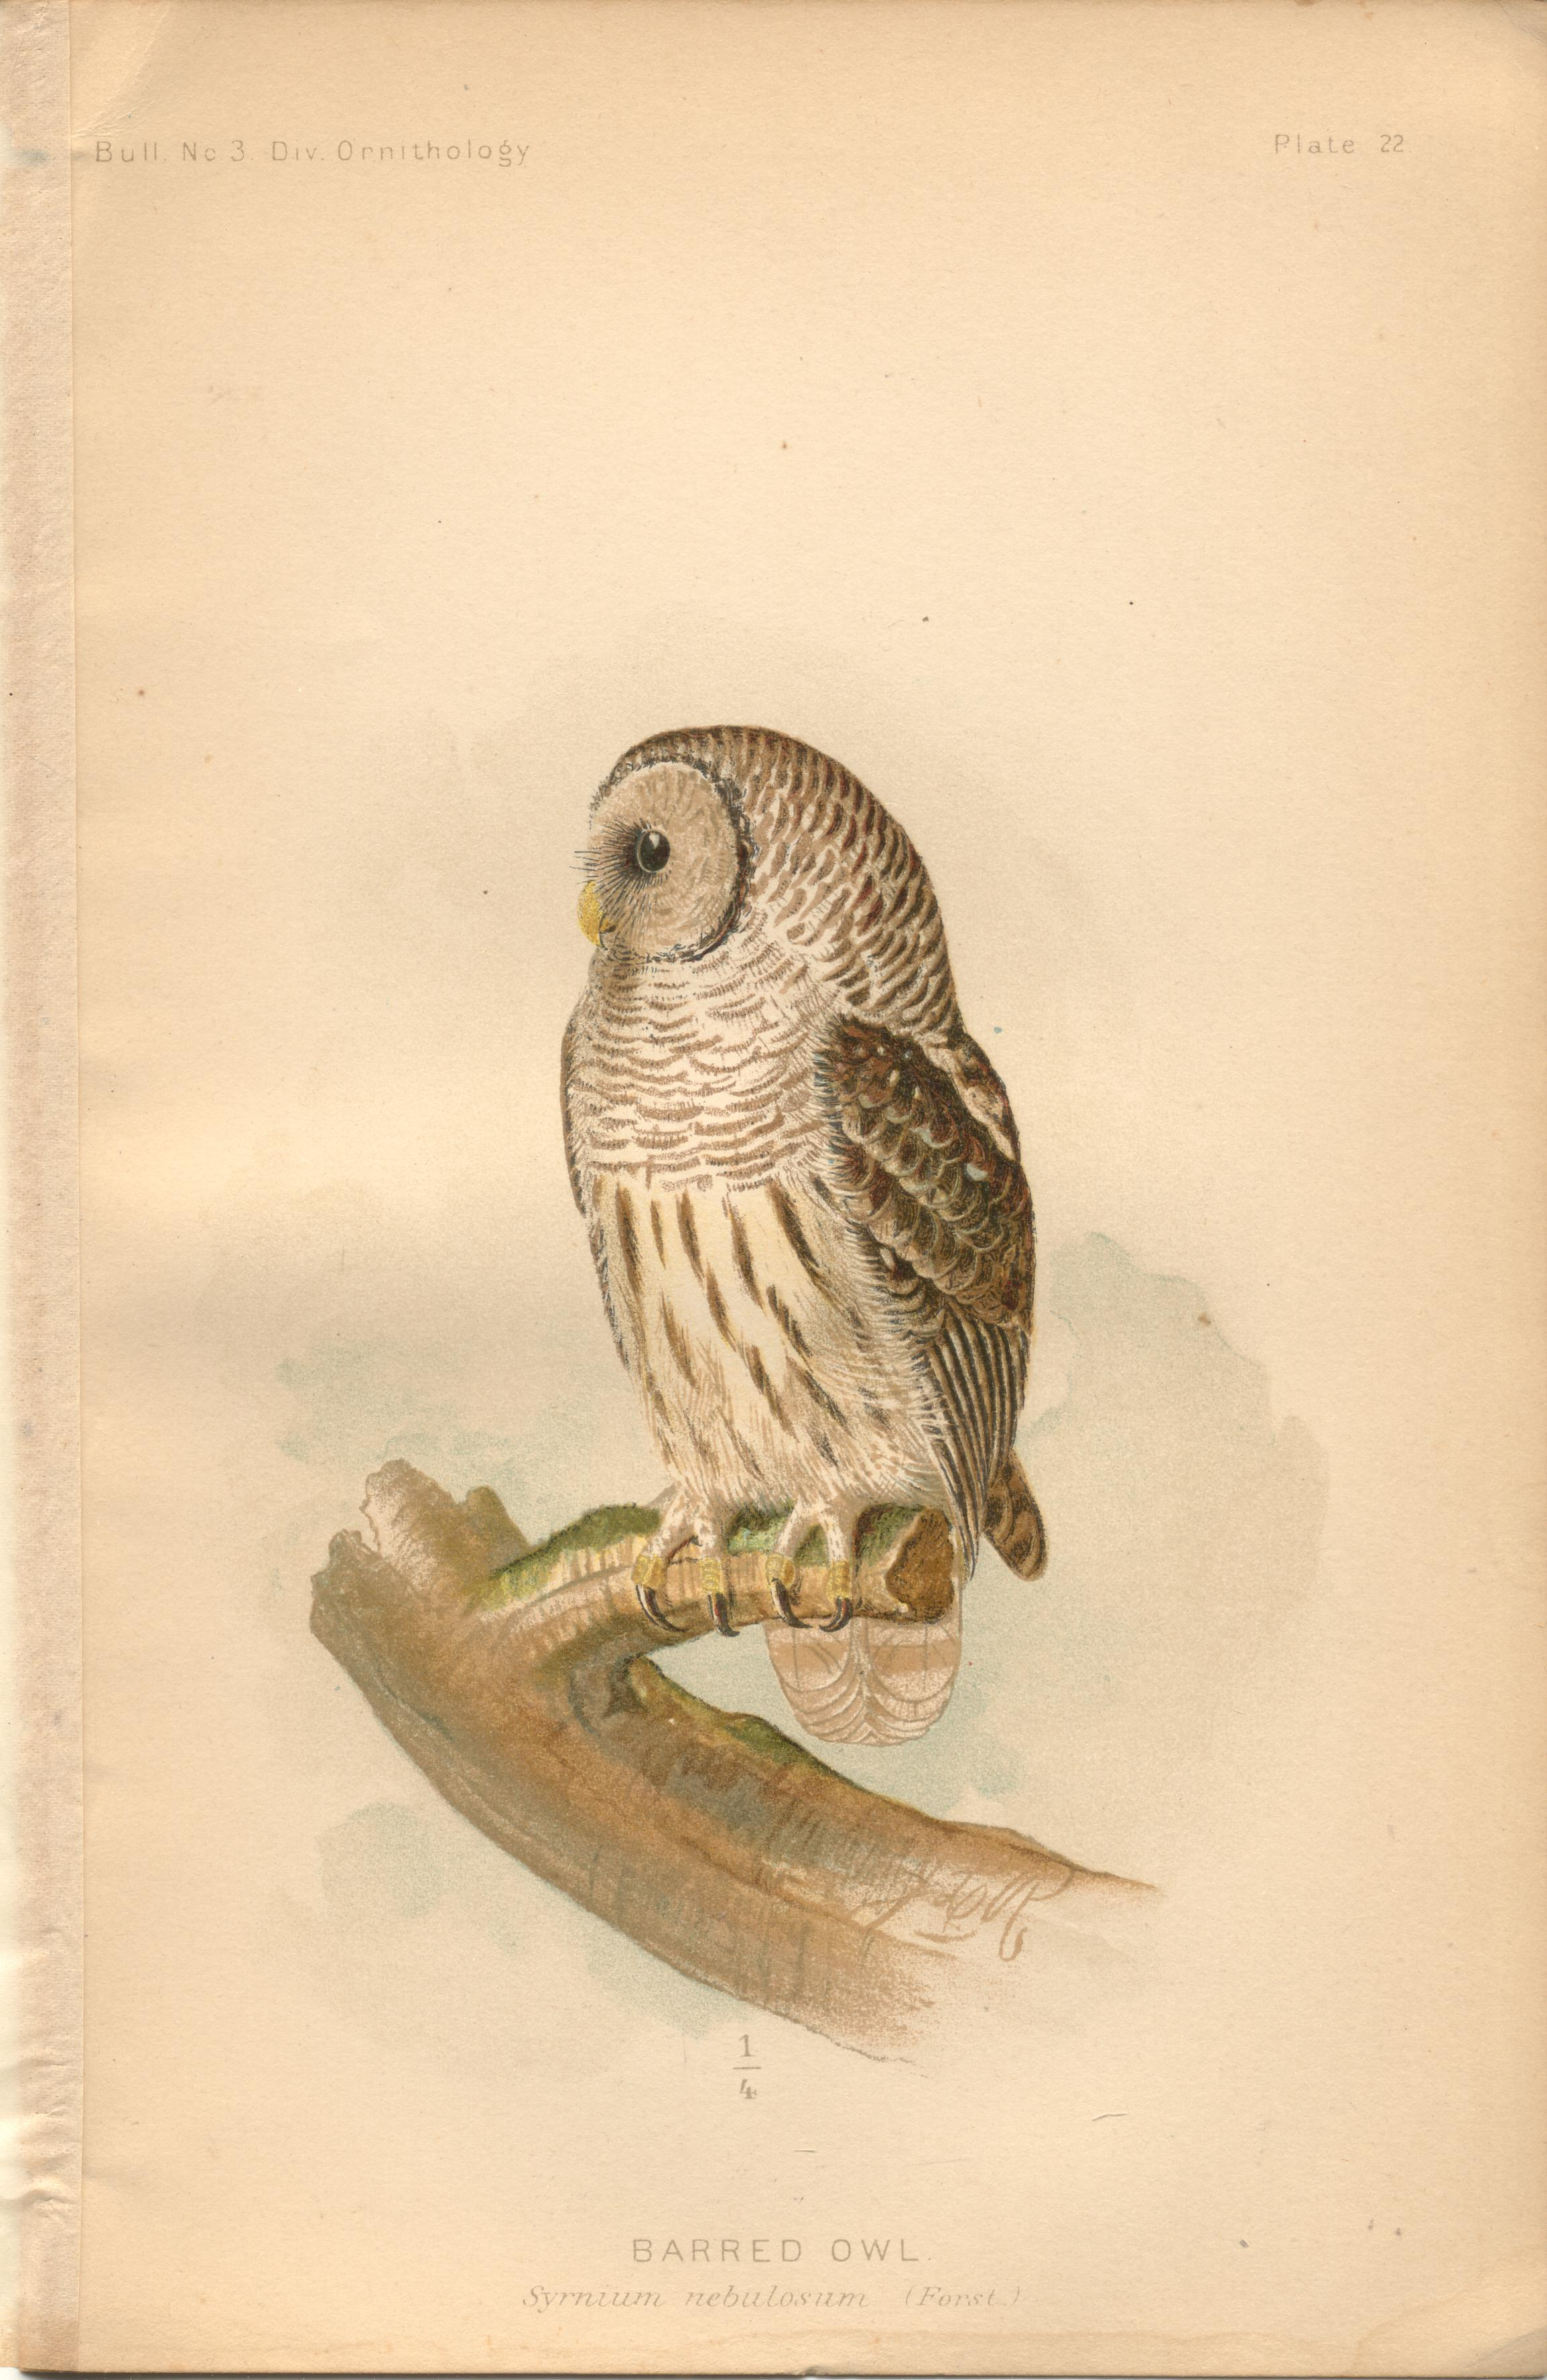 """Image for Barred Owl - single original antique chromolithographed plate from """"The Hawks and Owls of the United States in Their Relation to Agriculture"""